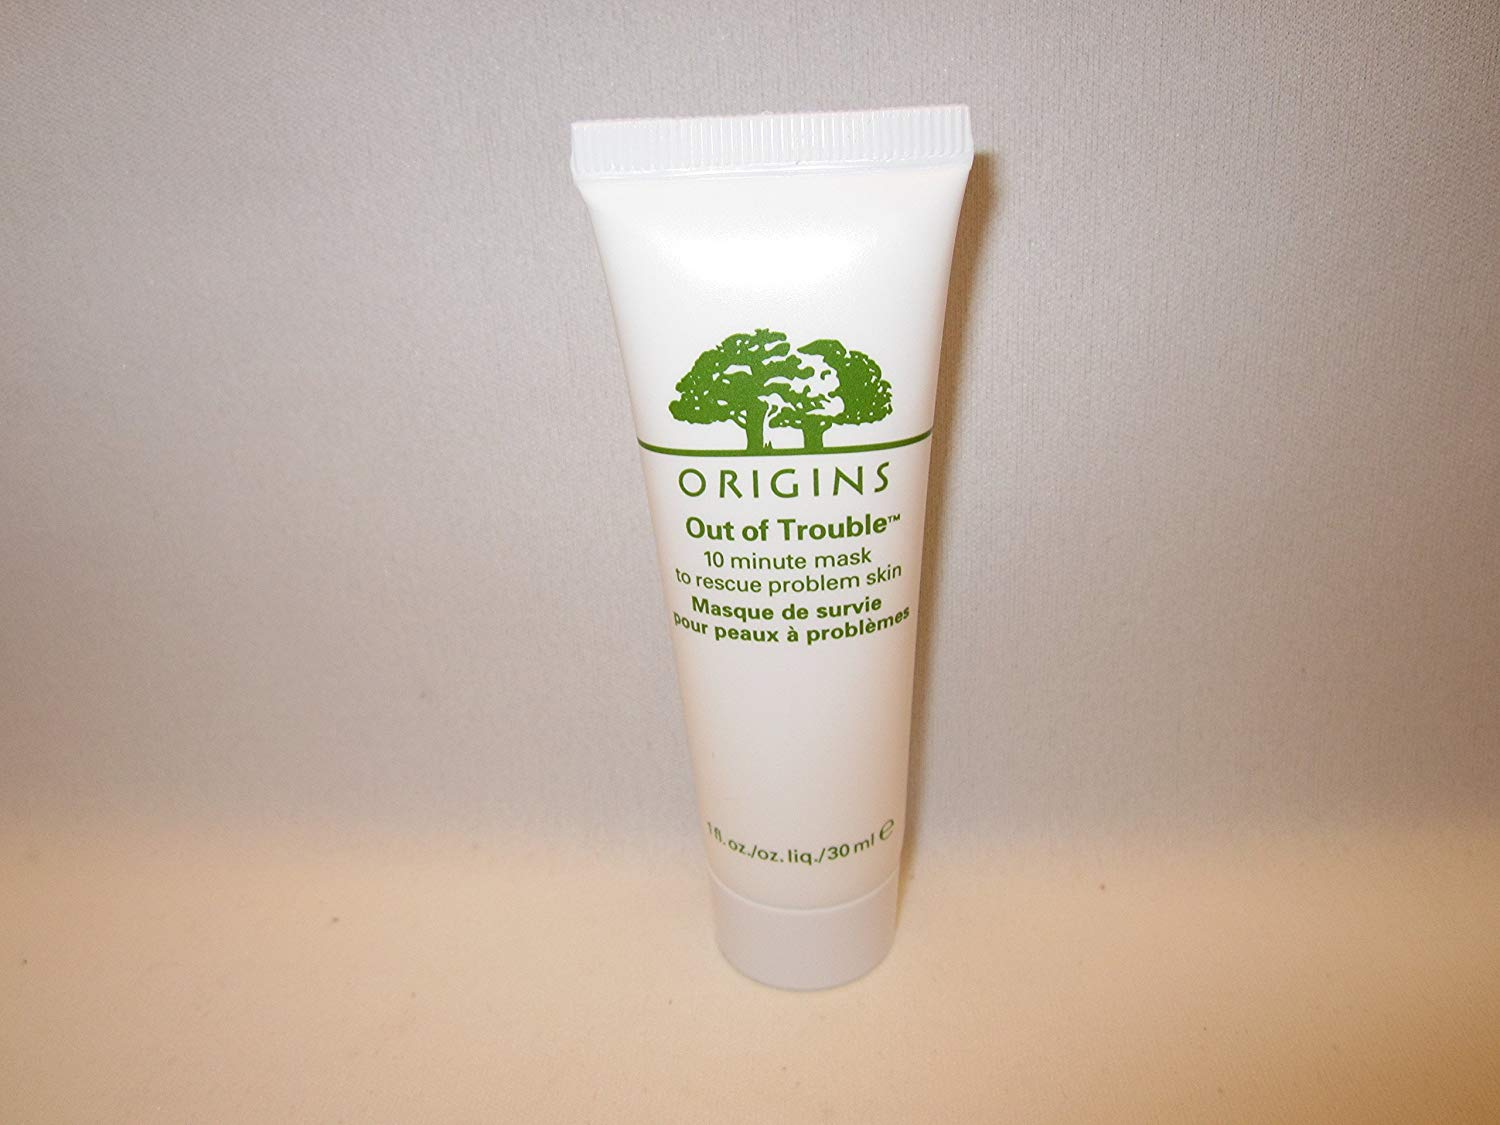 Origins Out of Trouble 10-minute Mask to Rescue Problem Skin